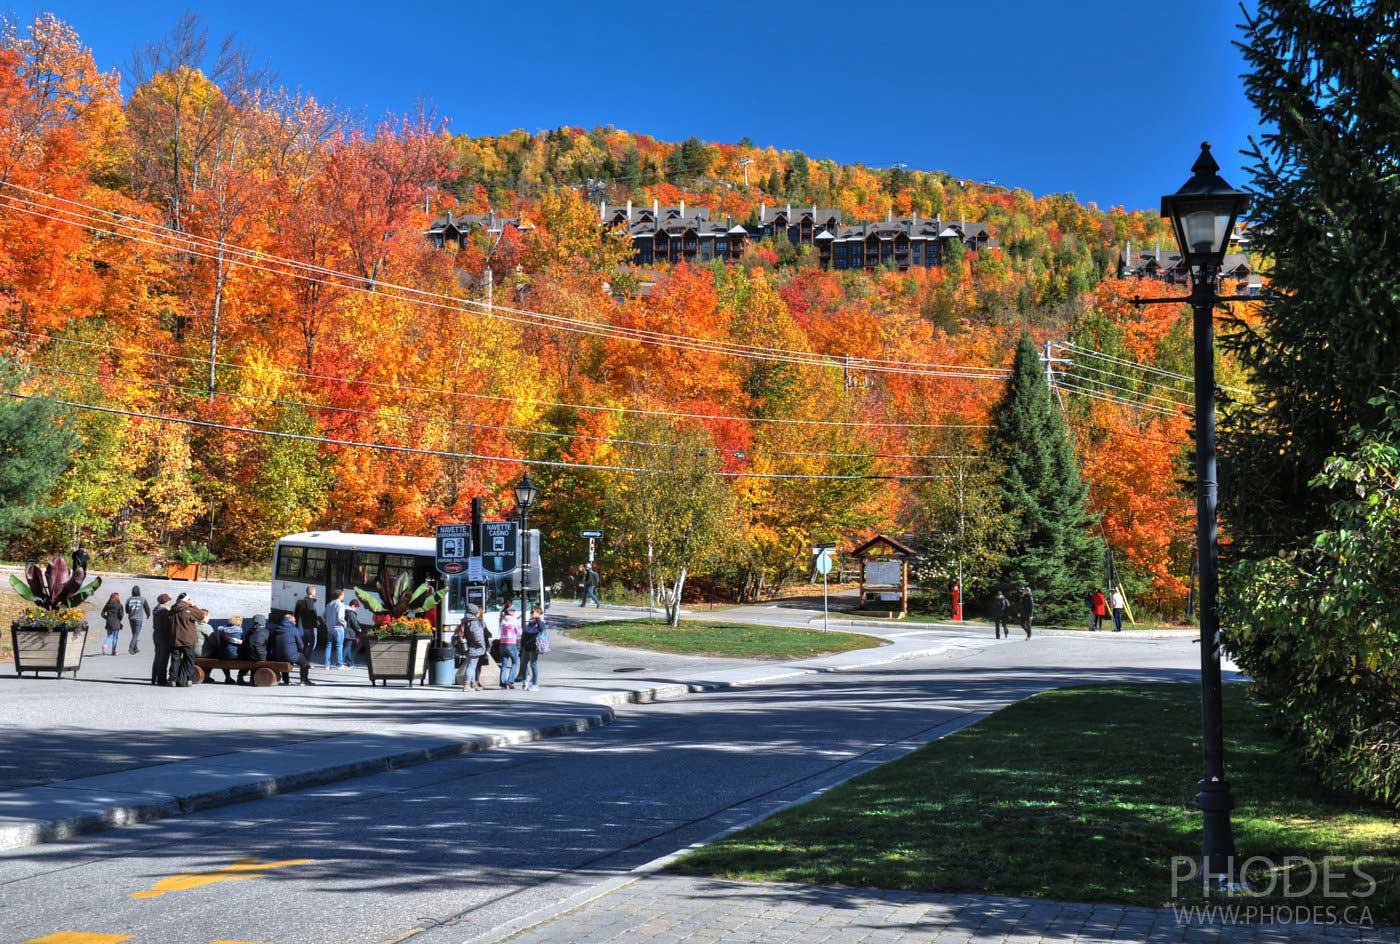 City of Mont-Tremblant near visitor center